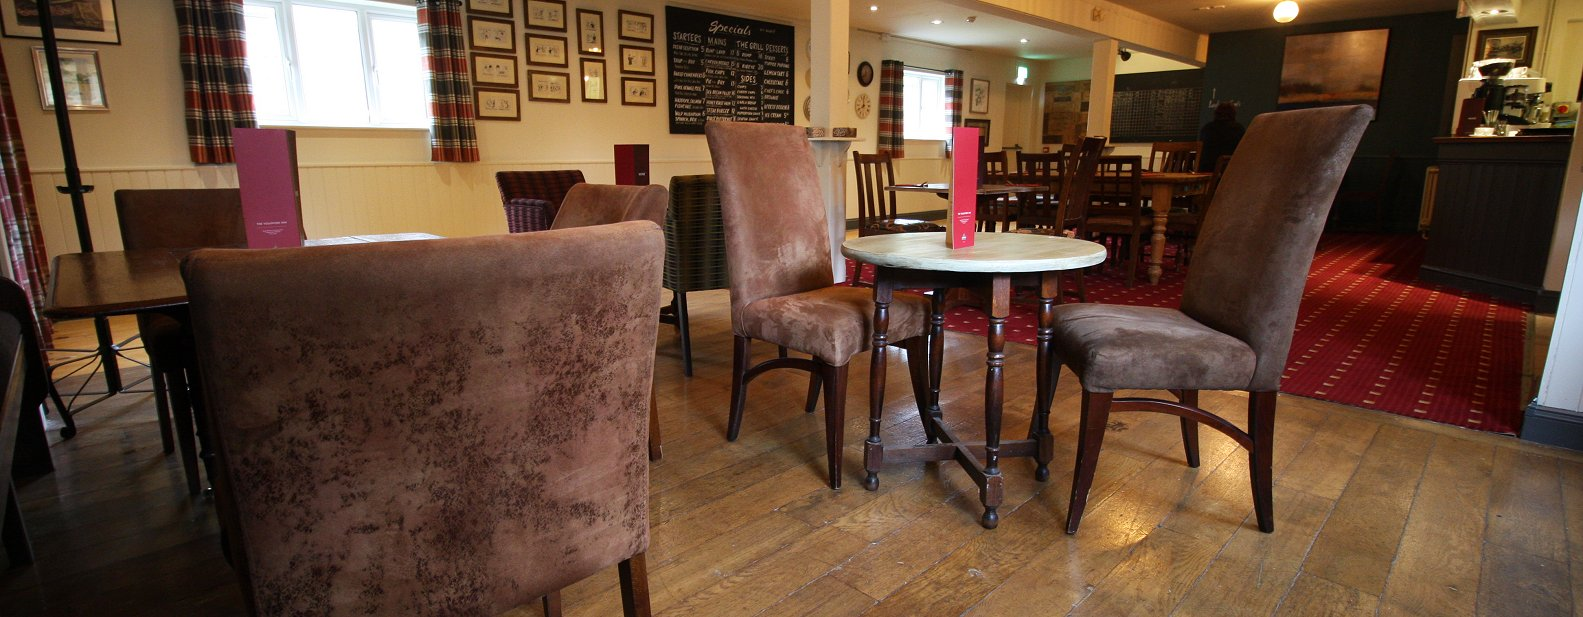 The Volunteer, Great Somerford, Pub Food & Functions nr Malmesbury/Chippenham/Swindon